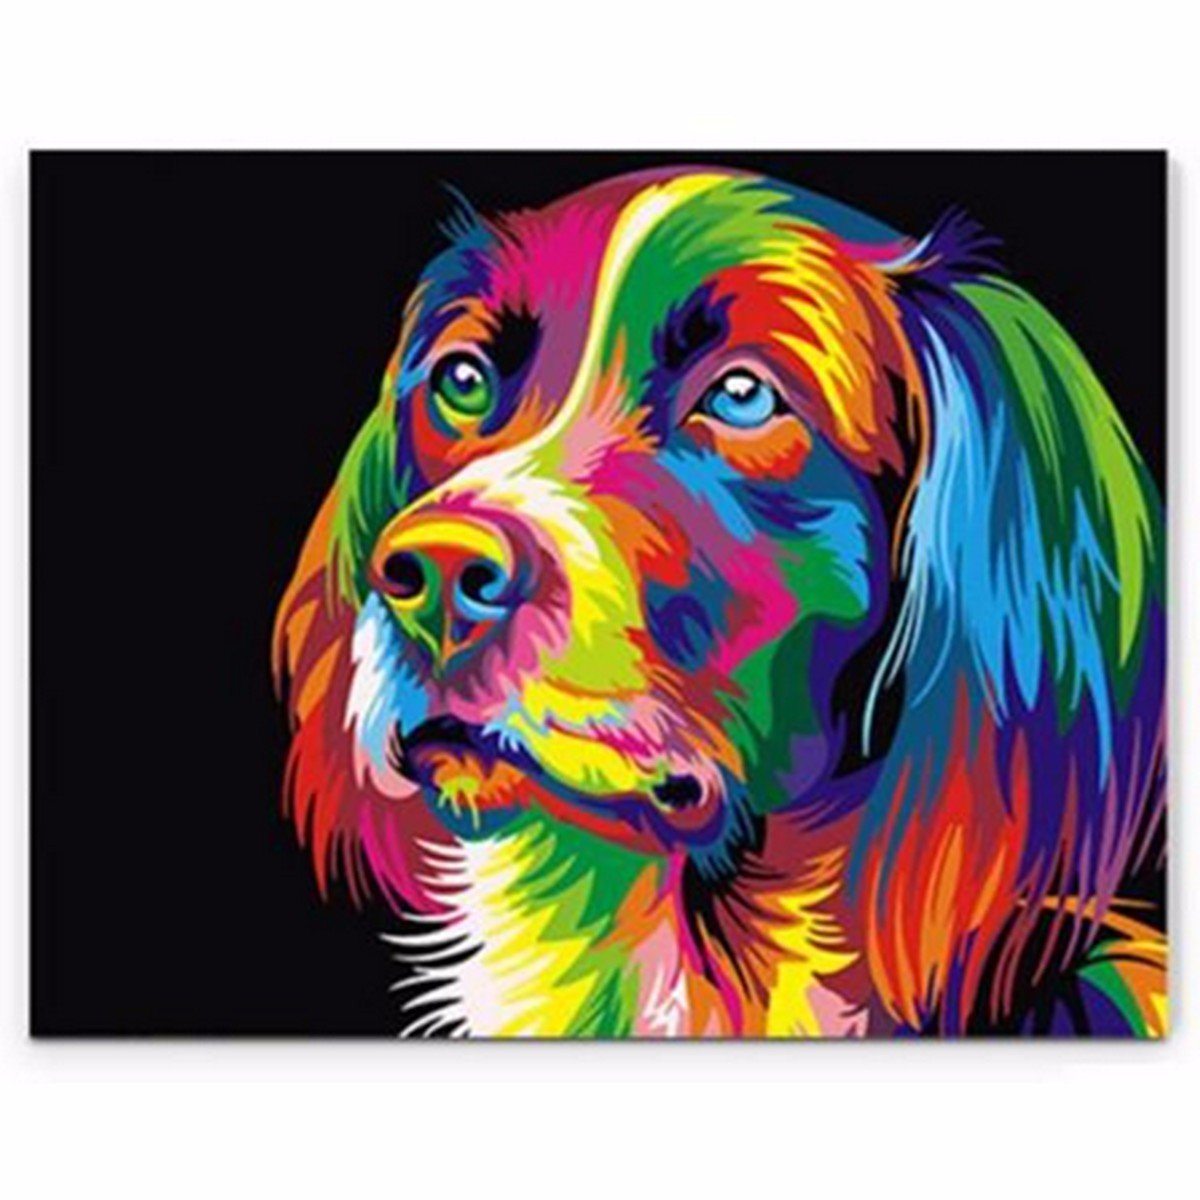 Other Home Arts & Crafts Search For Flights 50x40cm Colorful Puppy Dog Little Animal Pet Diy Self Handicraft Paint Kit Home Arts & Crafts